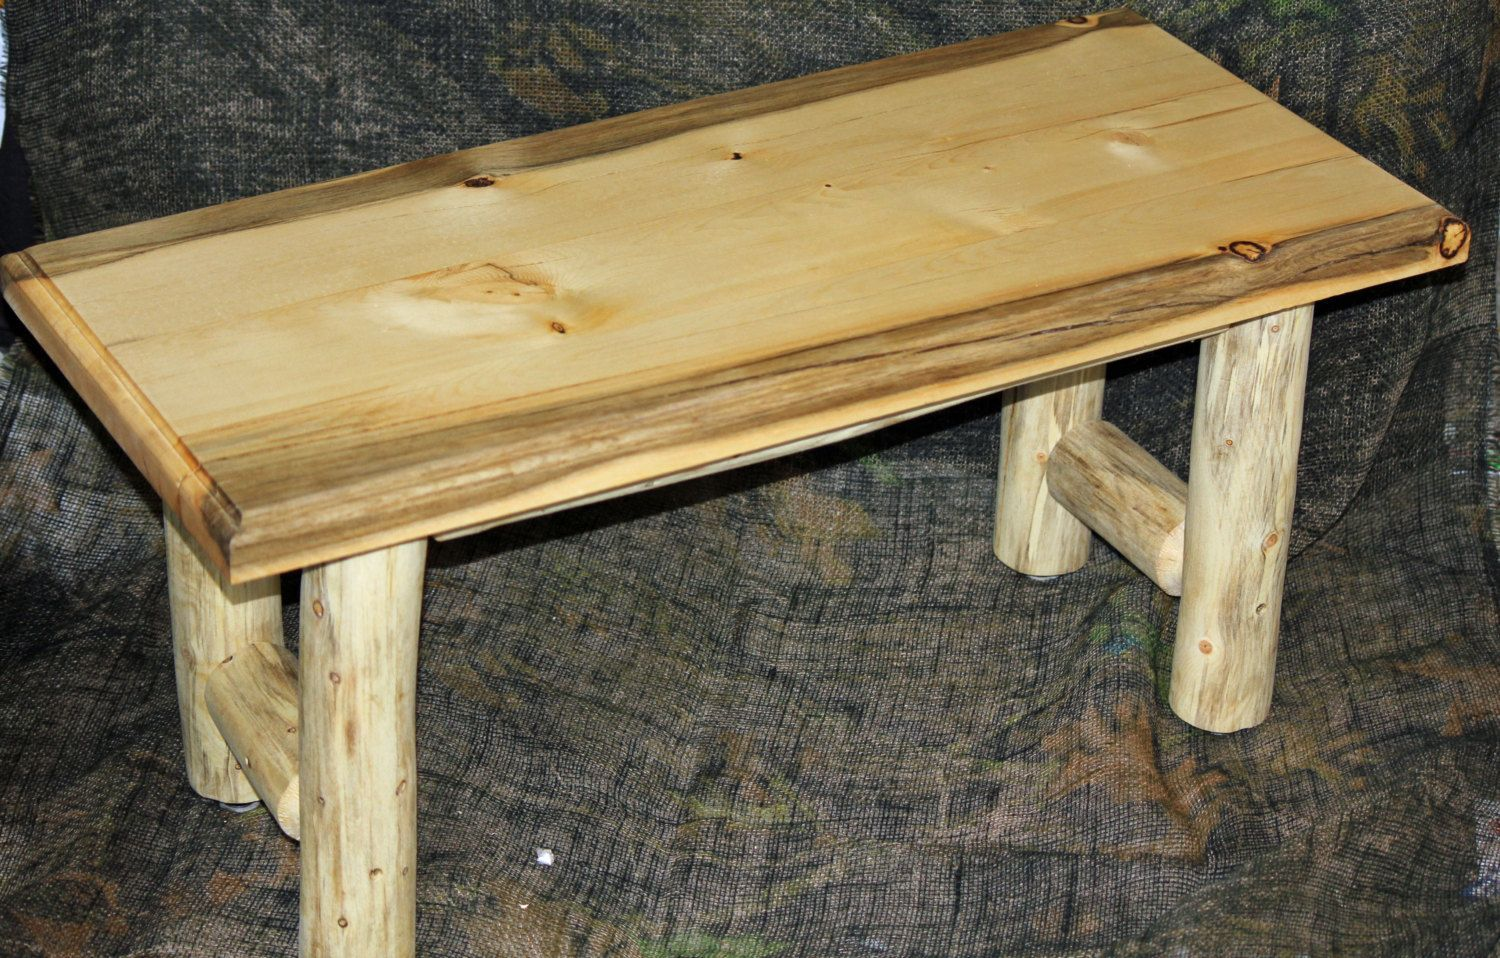 Recycled Wood Coffee Table Made Of Reclaimed Wood Choice Of Size Wood Thickness And Finish Custom Designs Welcome Reclaimed Wood Coffee Table Recycled Wood Rustic Coffee Tables